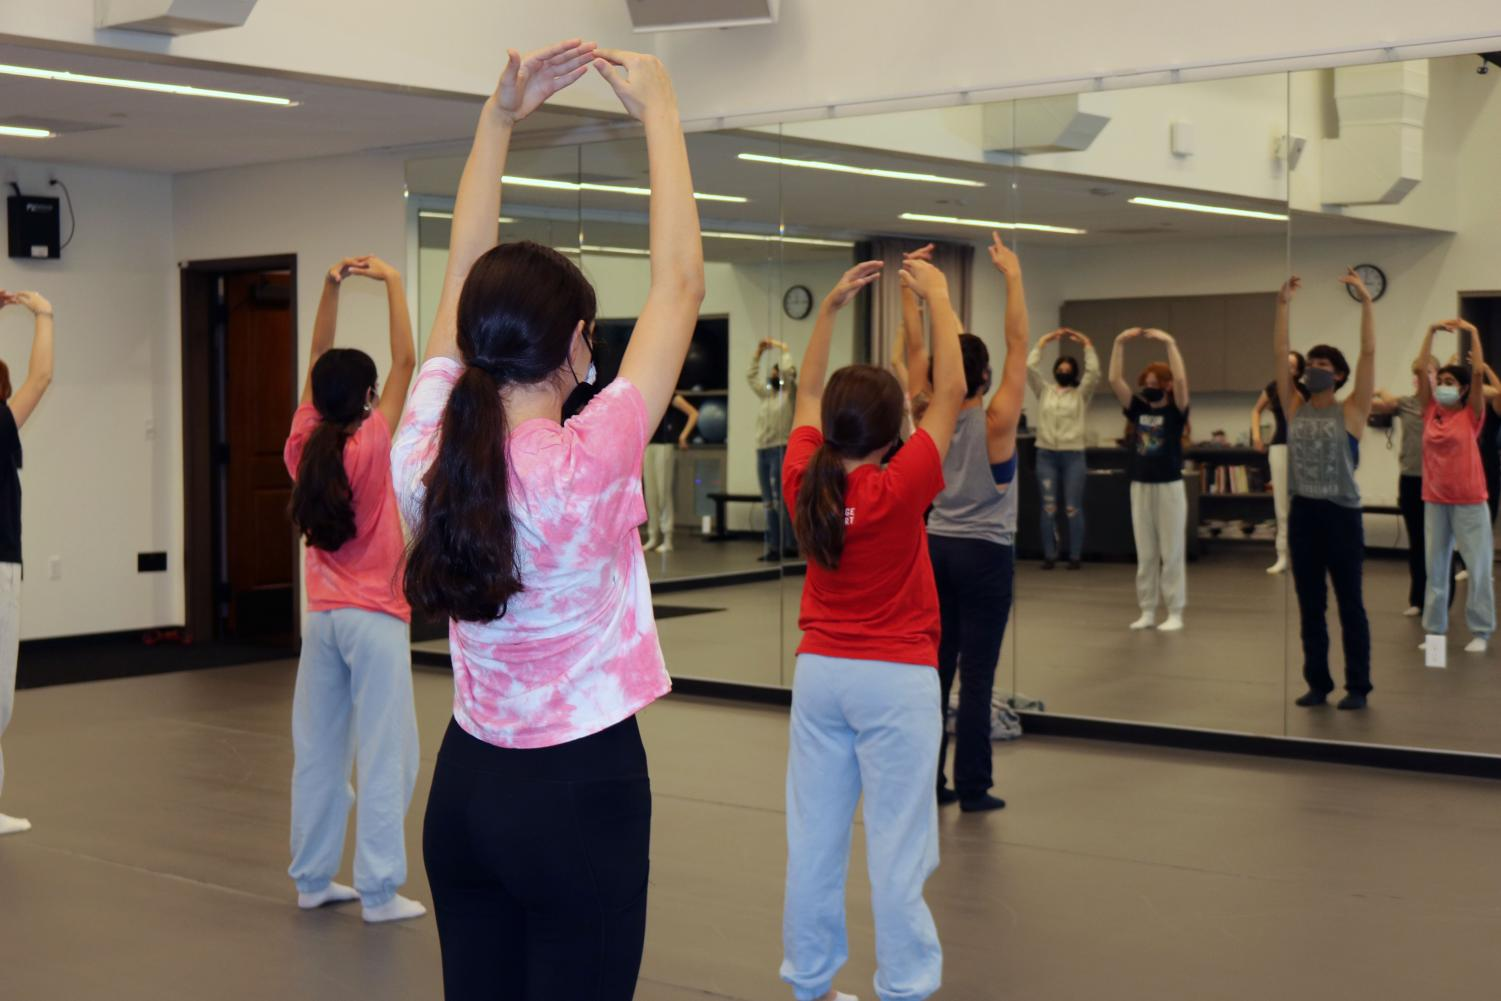 In the Hills new, state-of-the-art dance studio, teacher Jessie Ryan (in front wearing gray) teaches students new choreography.